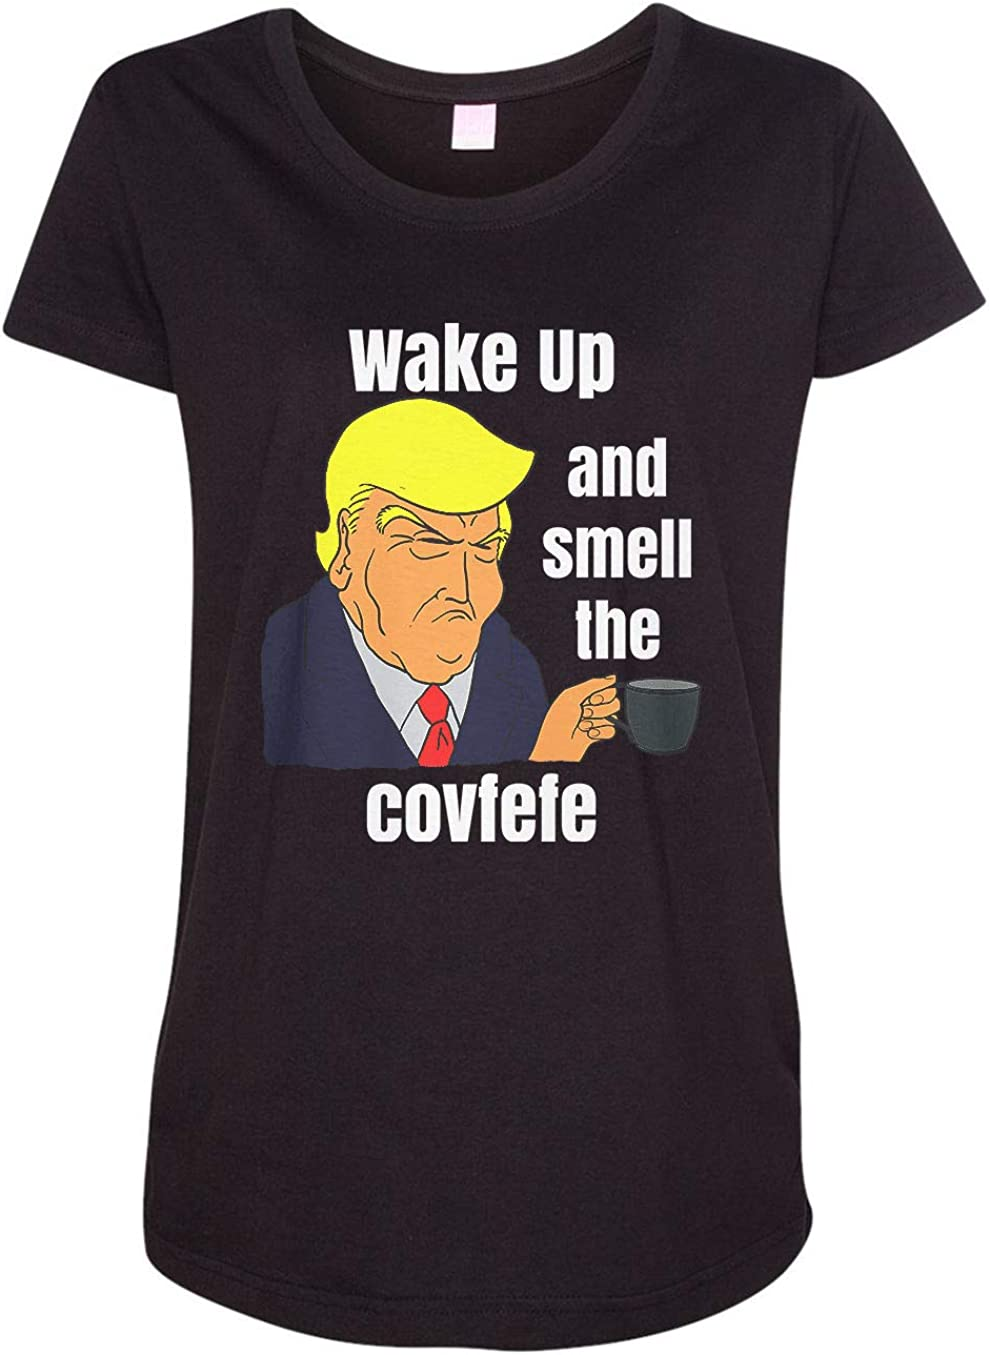 HARD EDGE DESIGN Women's Wake up and Smell The Covfefe T-Shirt